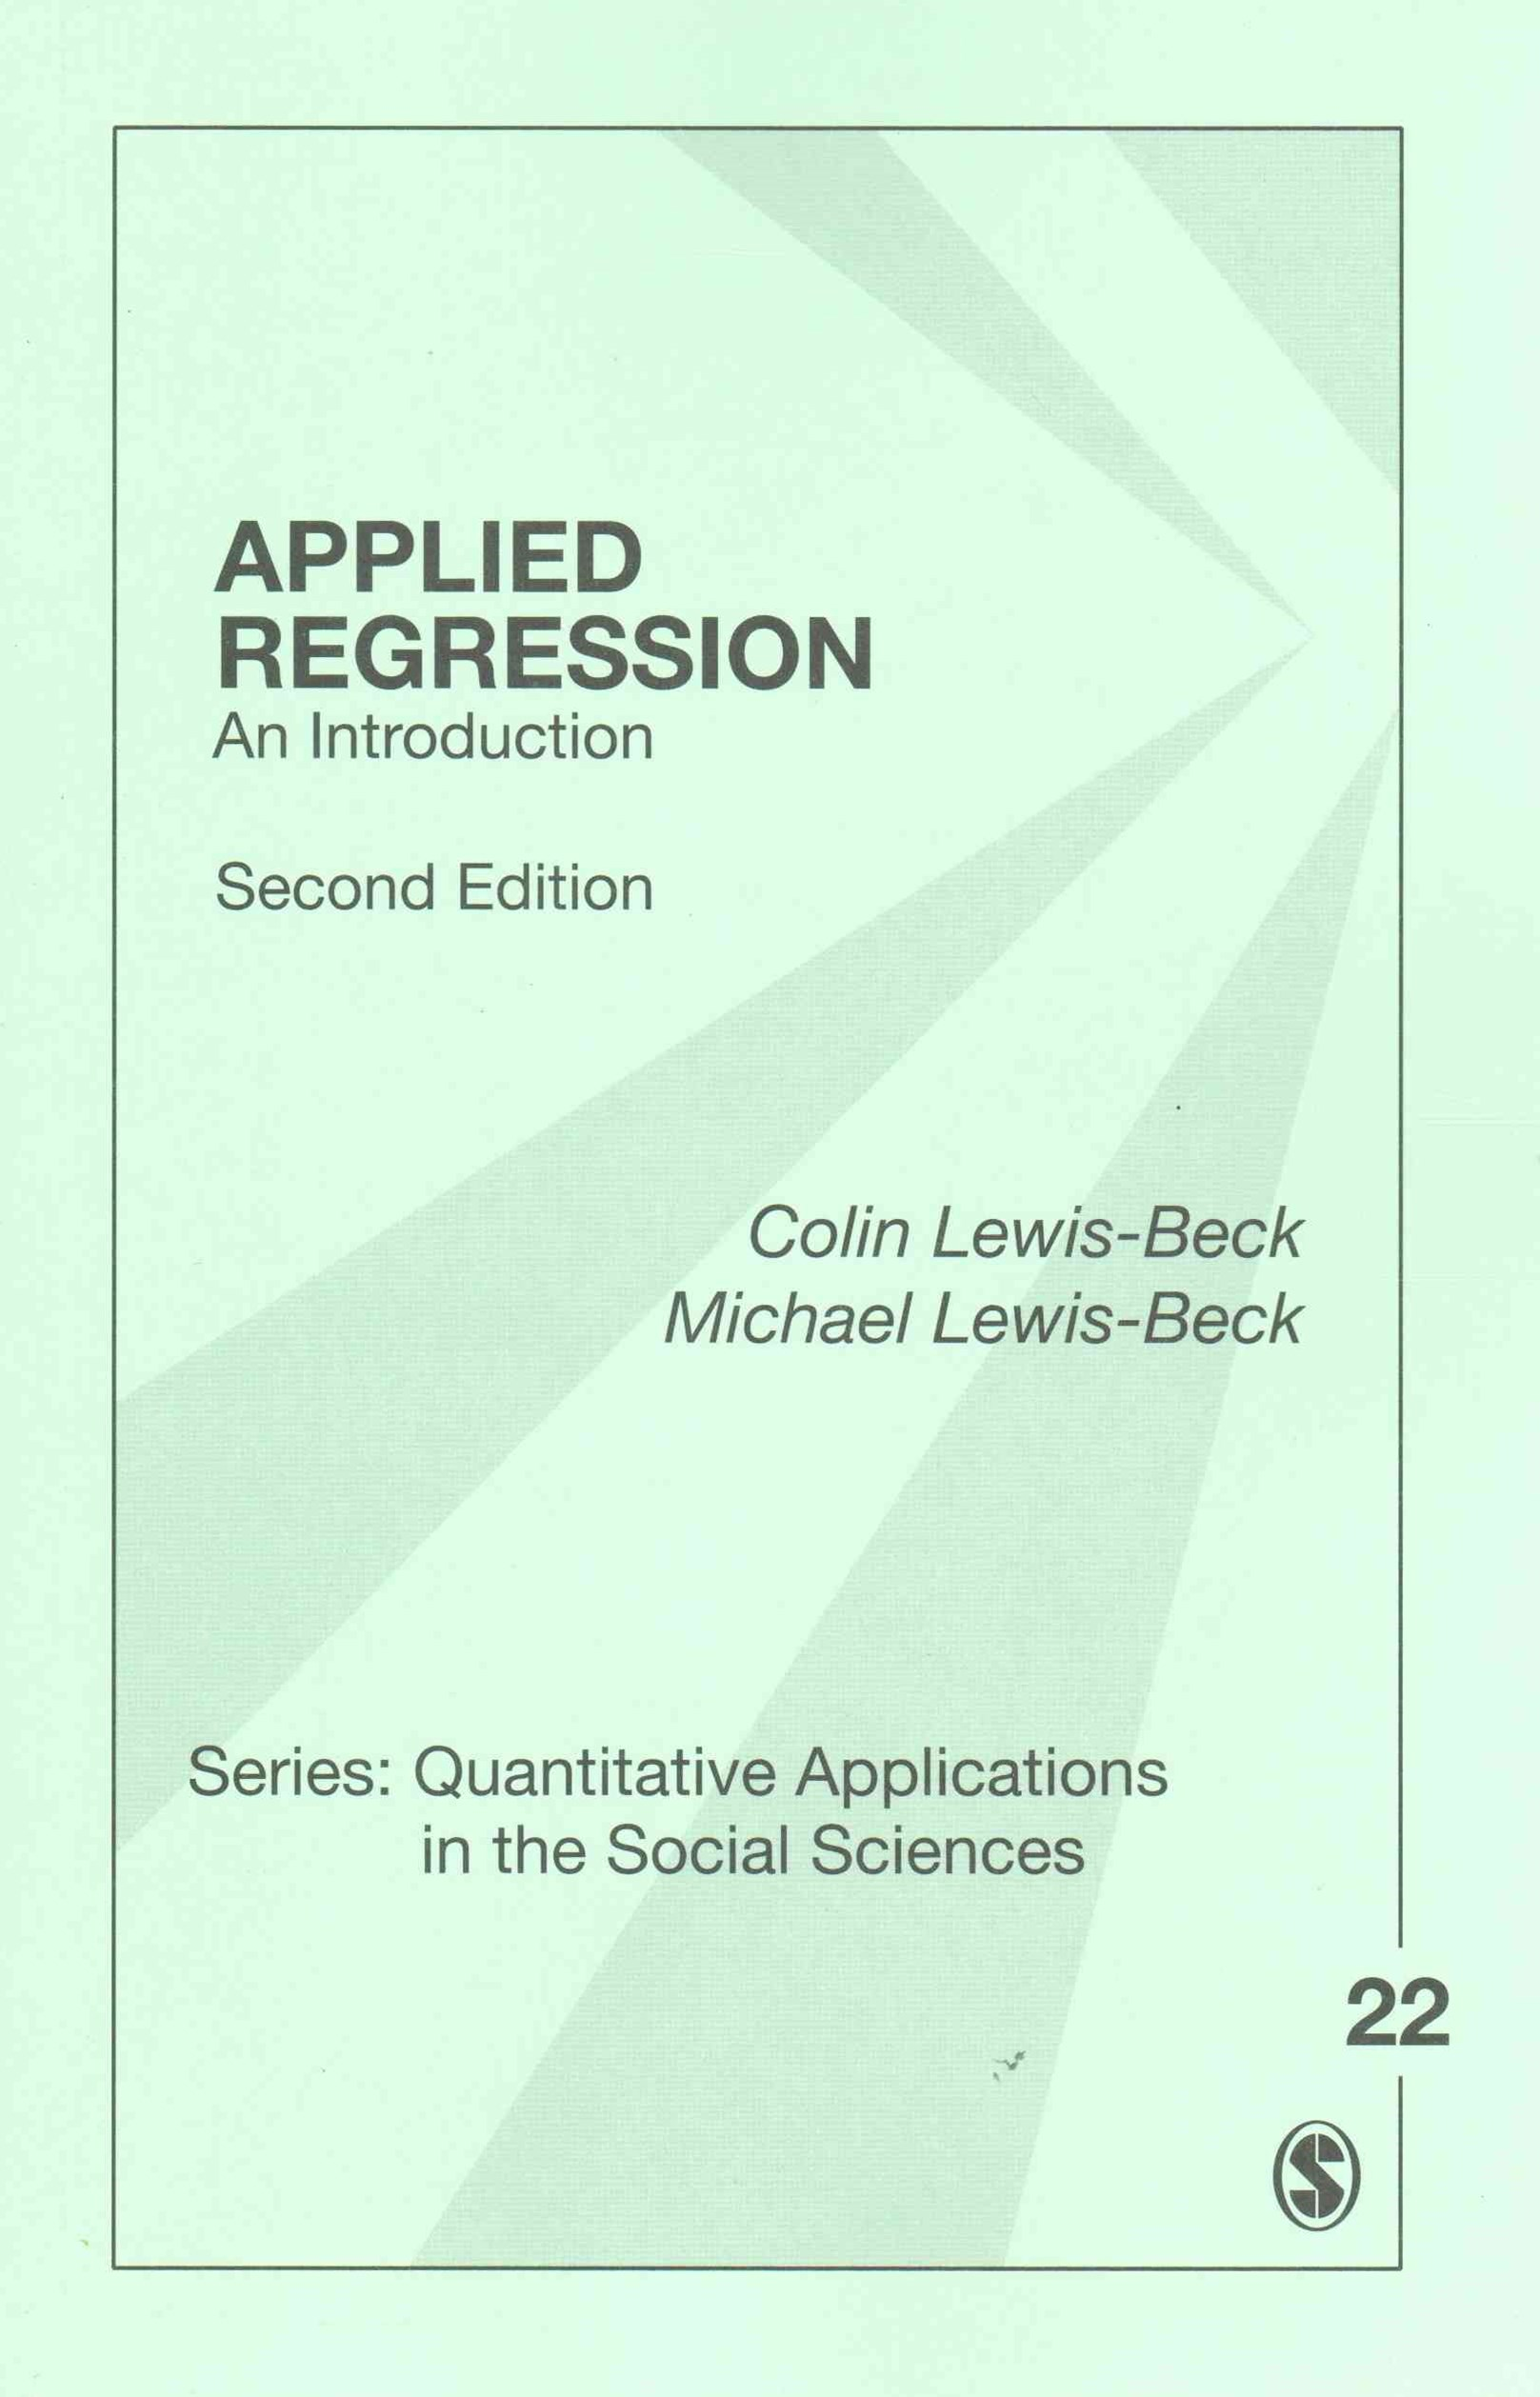 Applied Regression